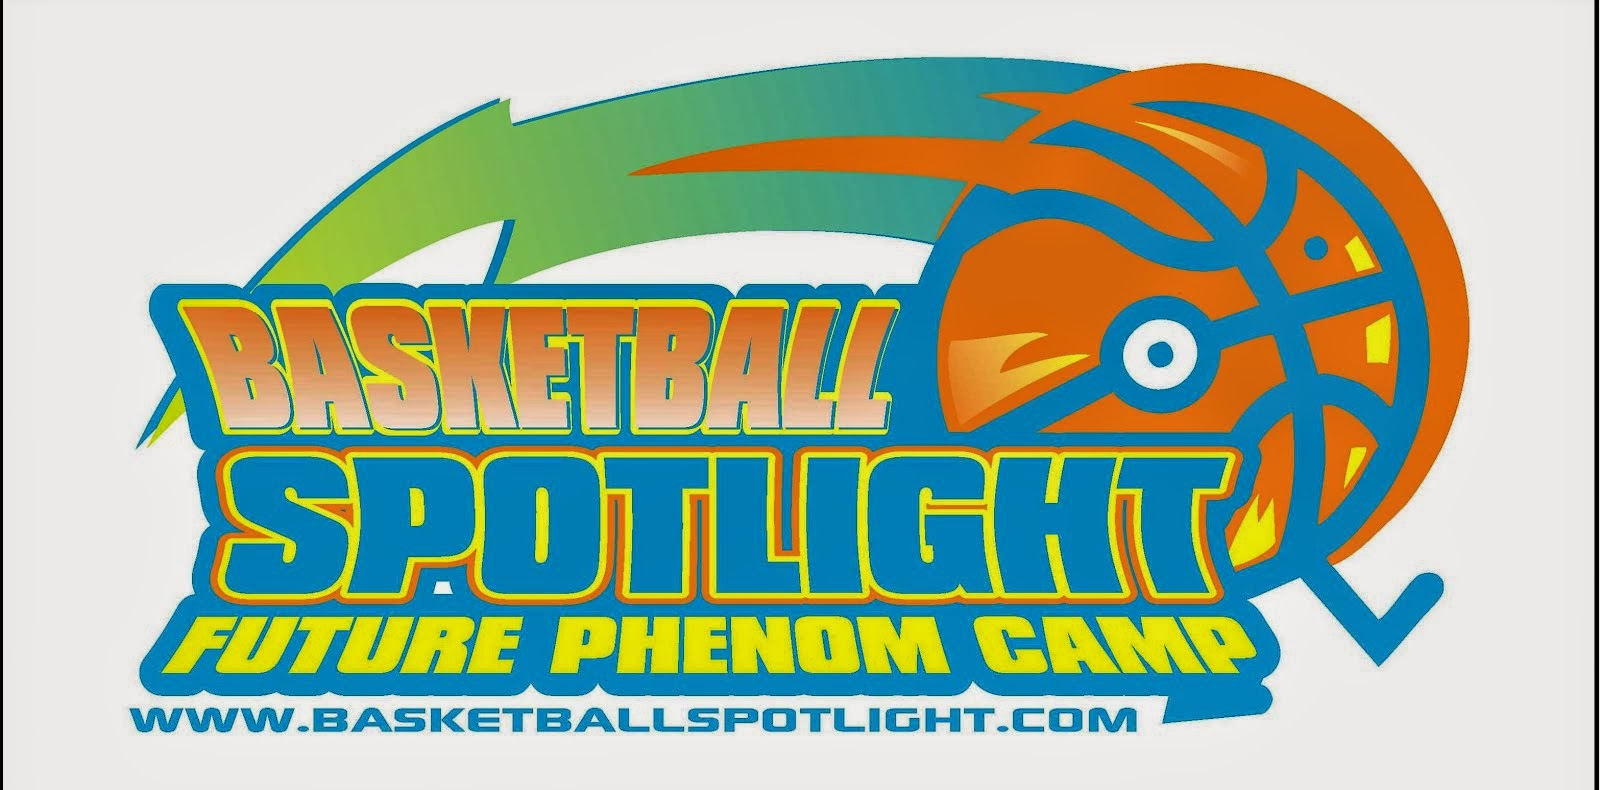 Basketball Spotlight Future Phenom Camp Registration (August 27th and 28th)